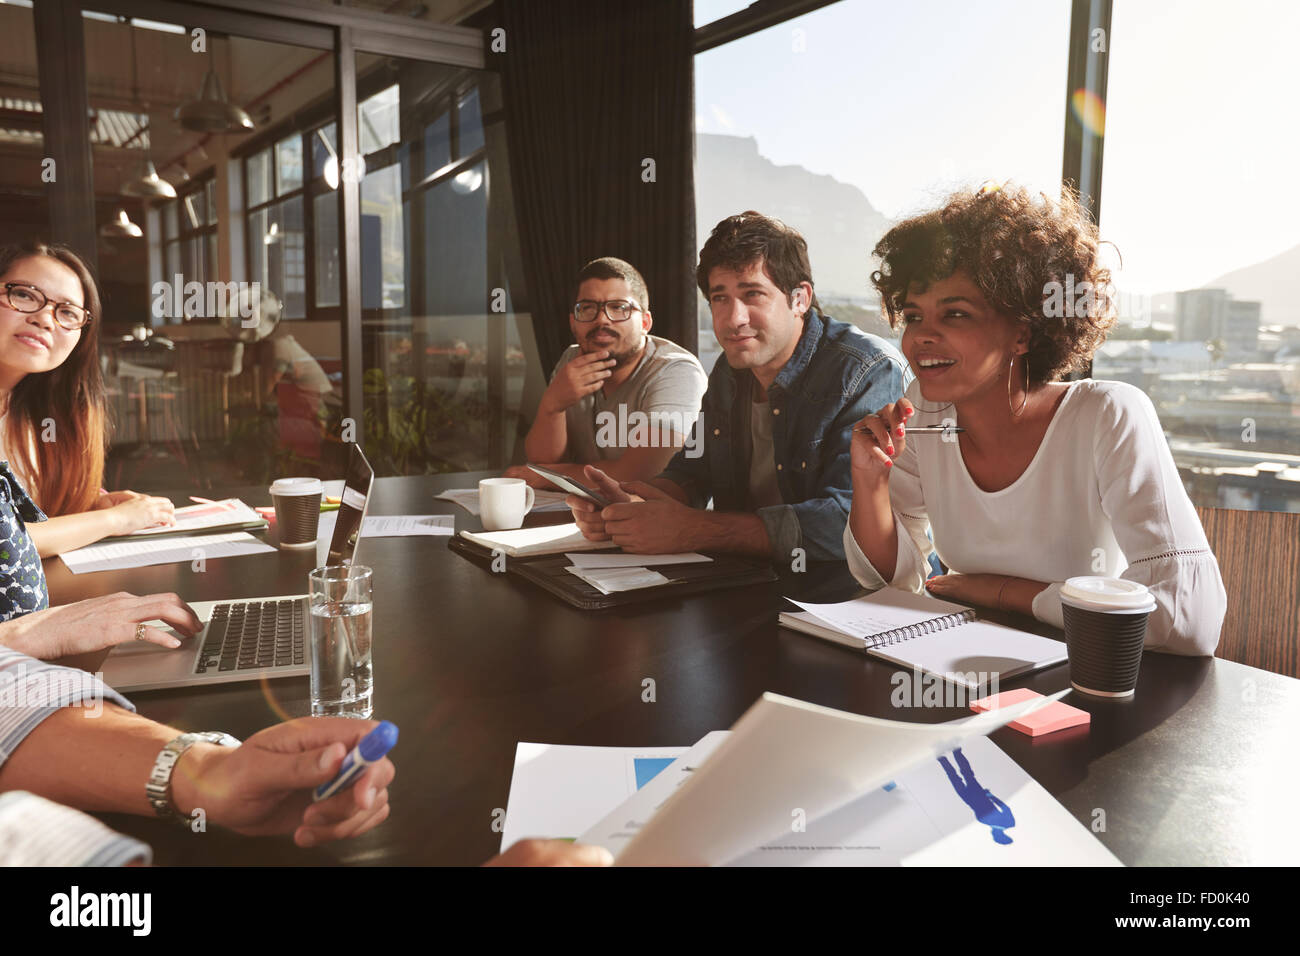 Team of young people discussing new business plan during a meeting in office. Mixed race team of designers discussing - Stock Image